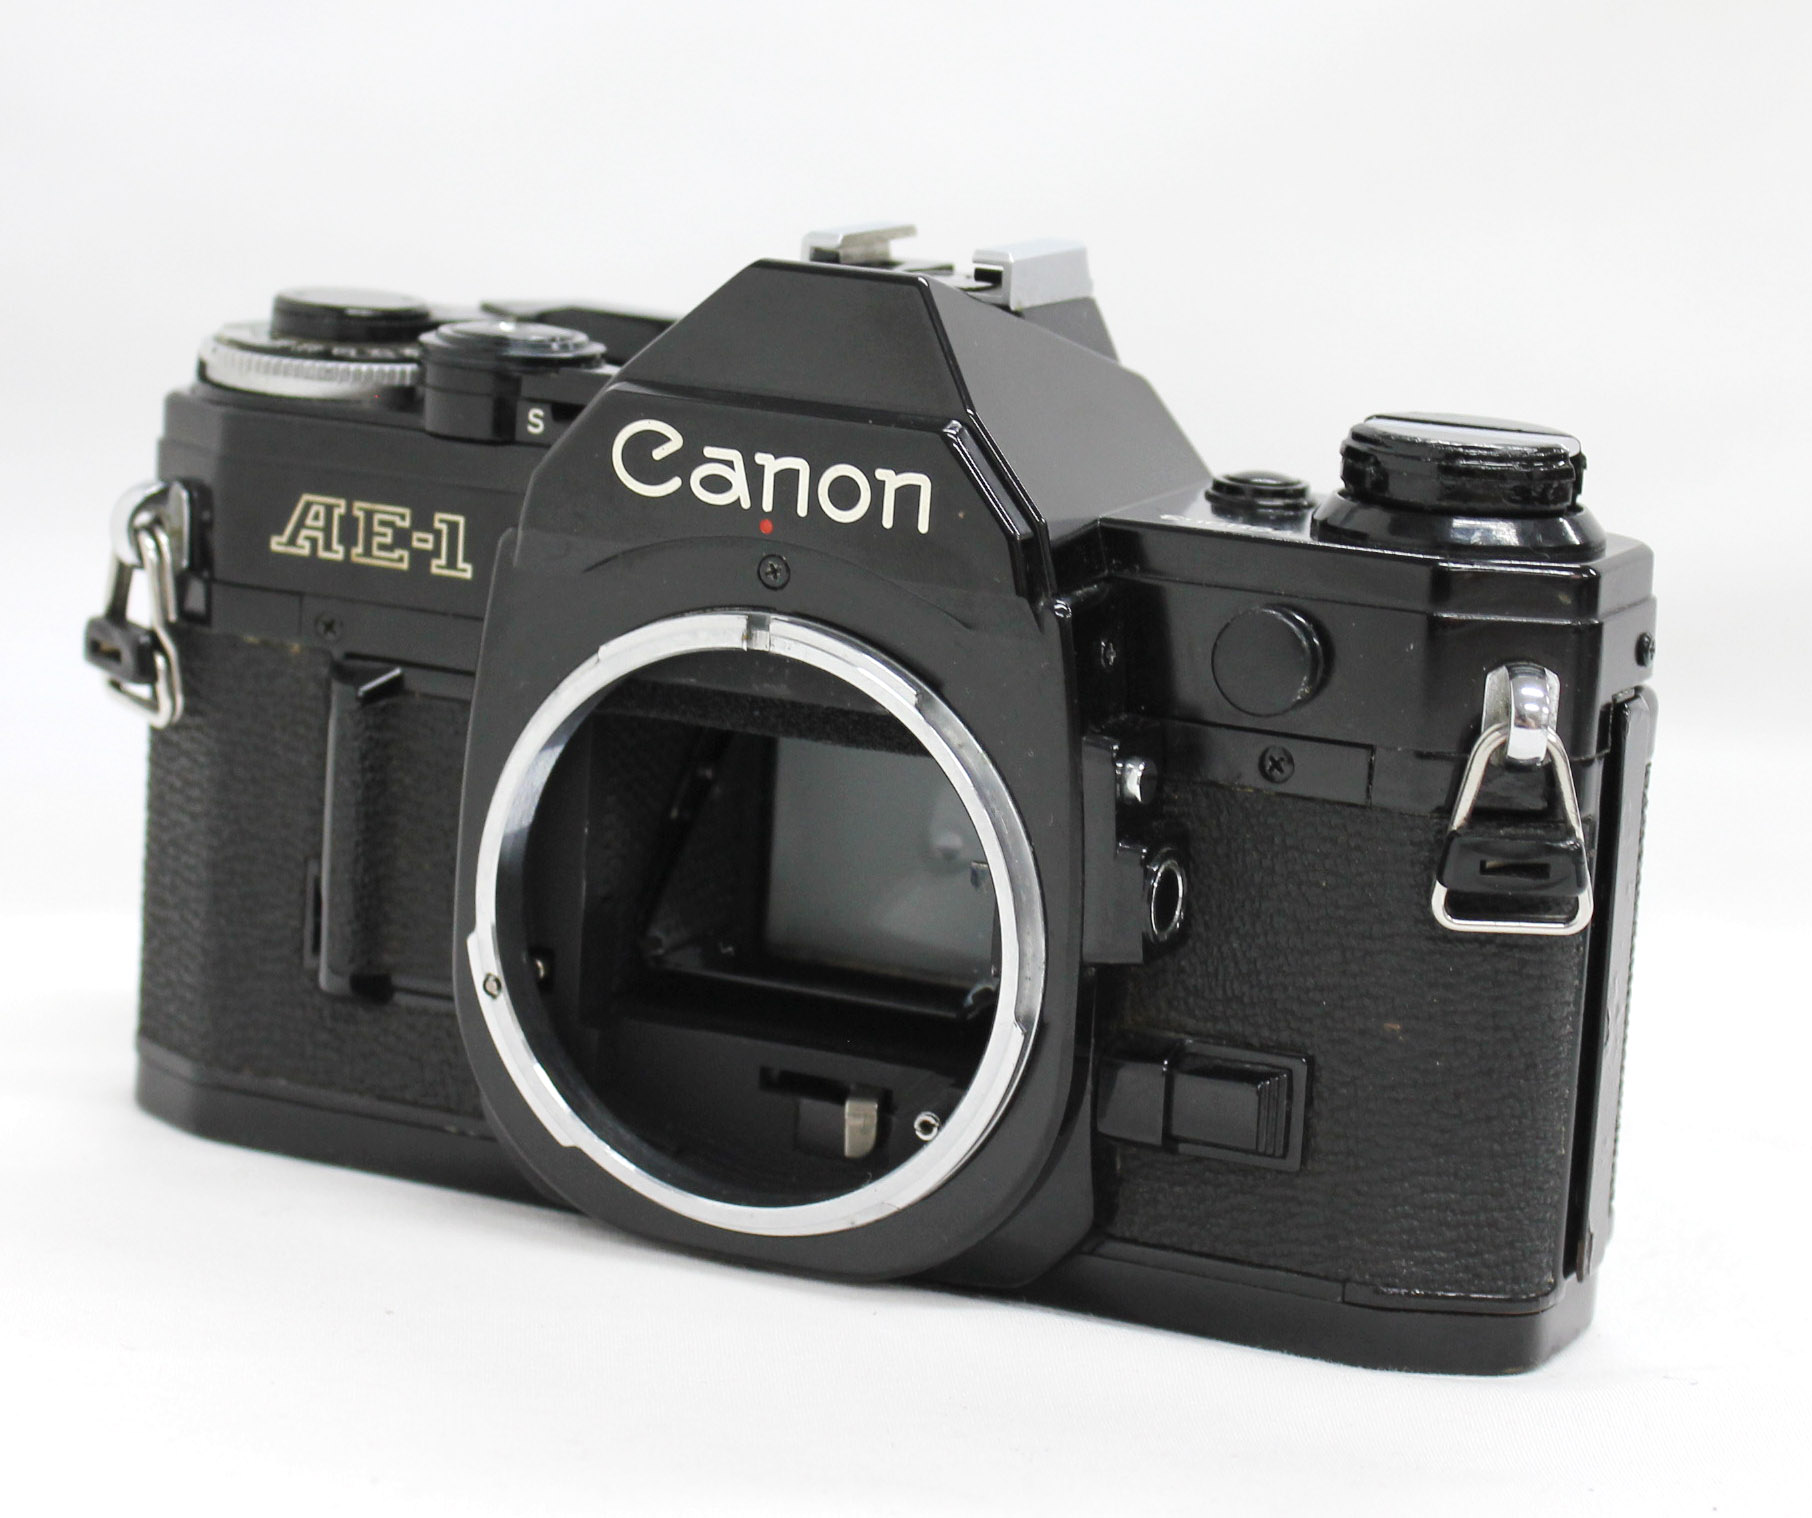 Canon AE-1 35mm SLR Film Camera Black with New FD 35-70mm F/3.5-4.5 Bonus Lens from Japan Photo 1